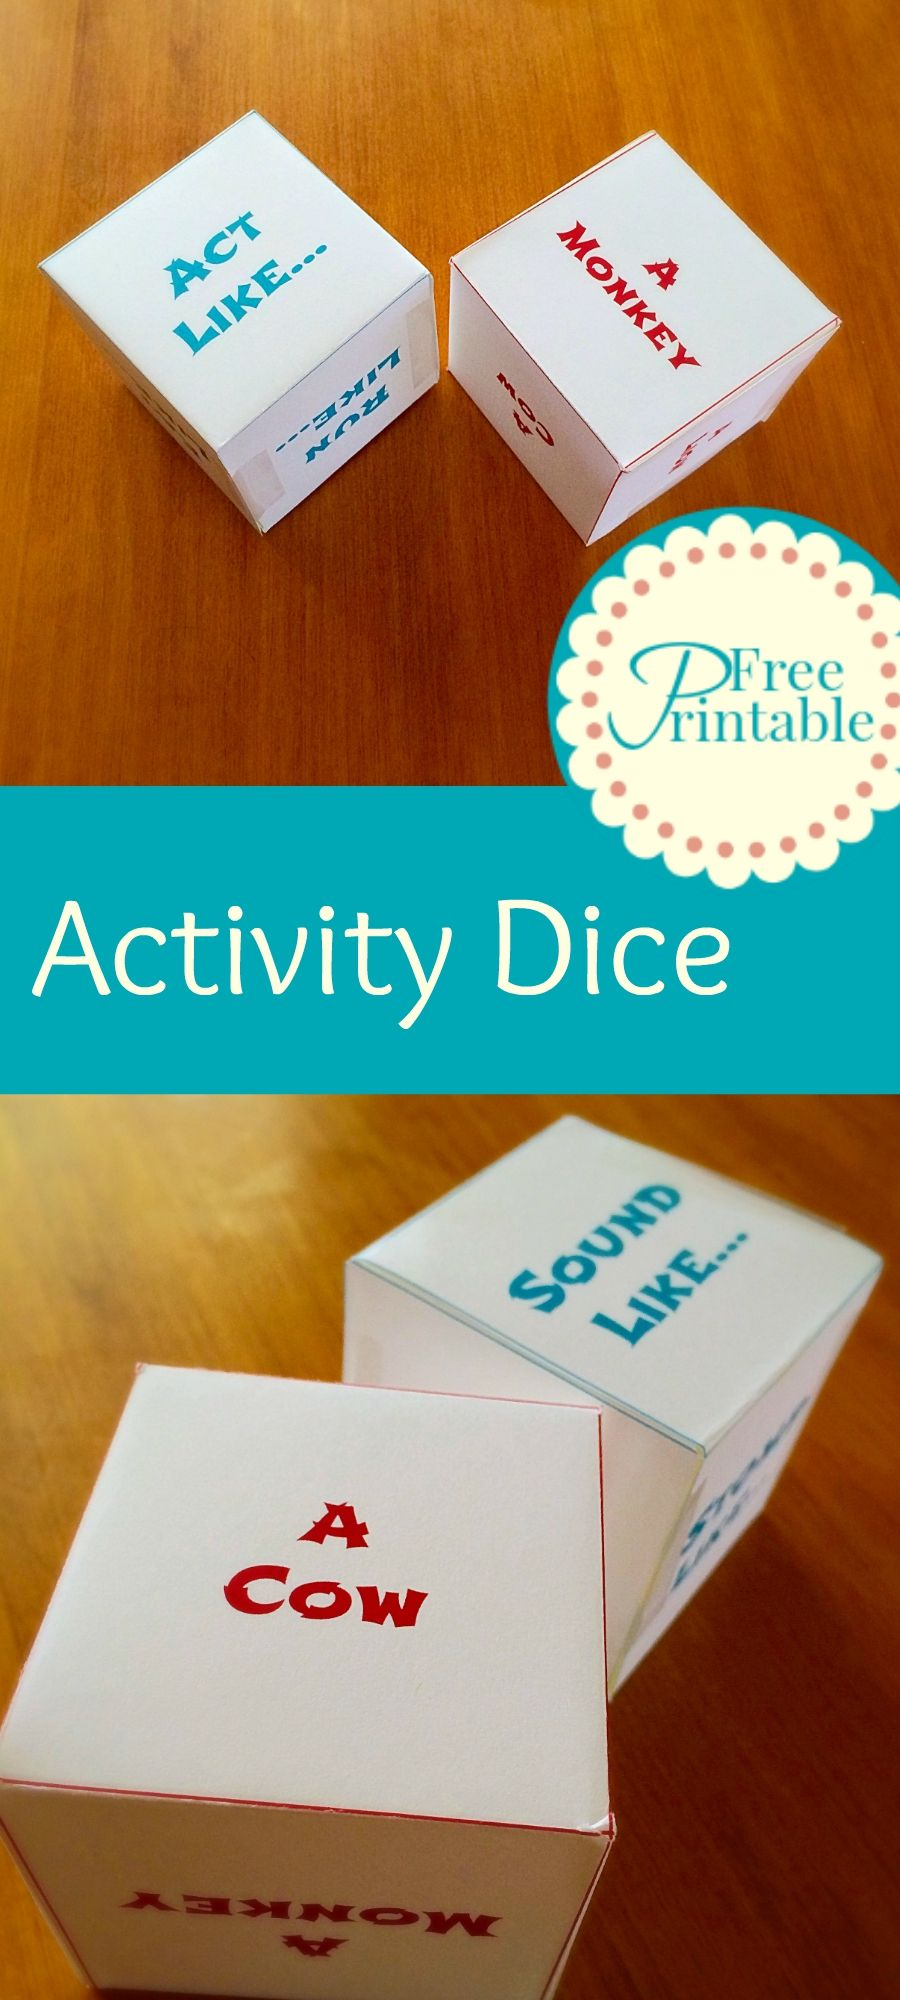 Printable Activity Dice - Animal Dice Games for Kids | Pinterest ...